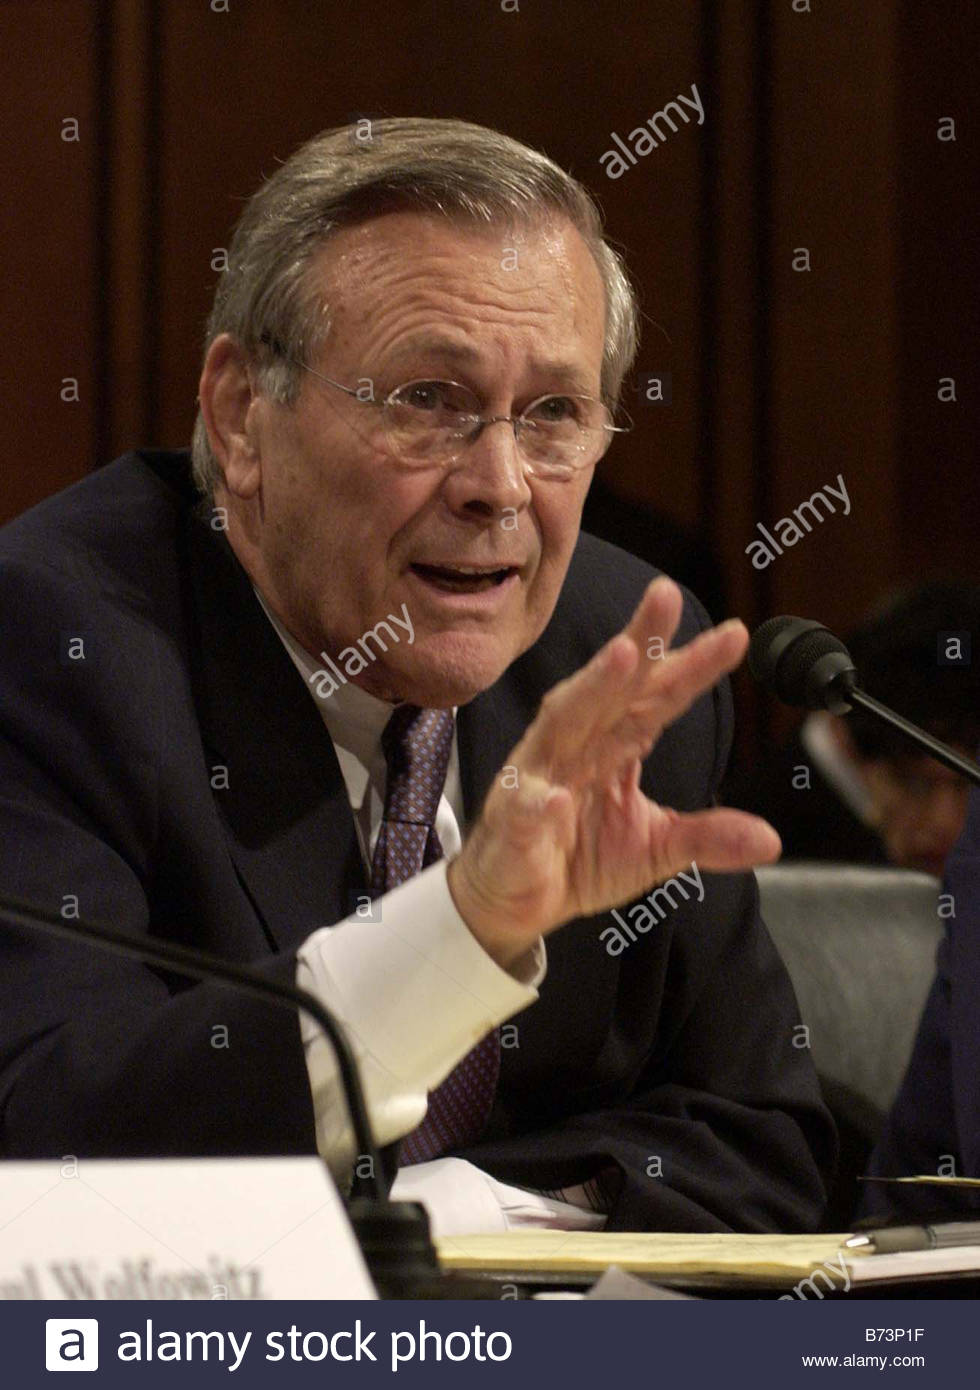 3 23 04 SEPTEMBER 11 COMMISSION HEARING Defense Secretary Donald Rumsfeld during first of two days of Sept 11 commission - Stock Image